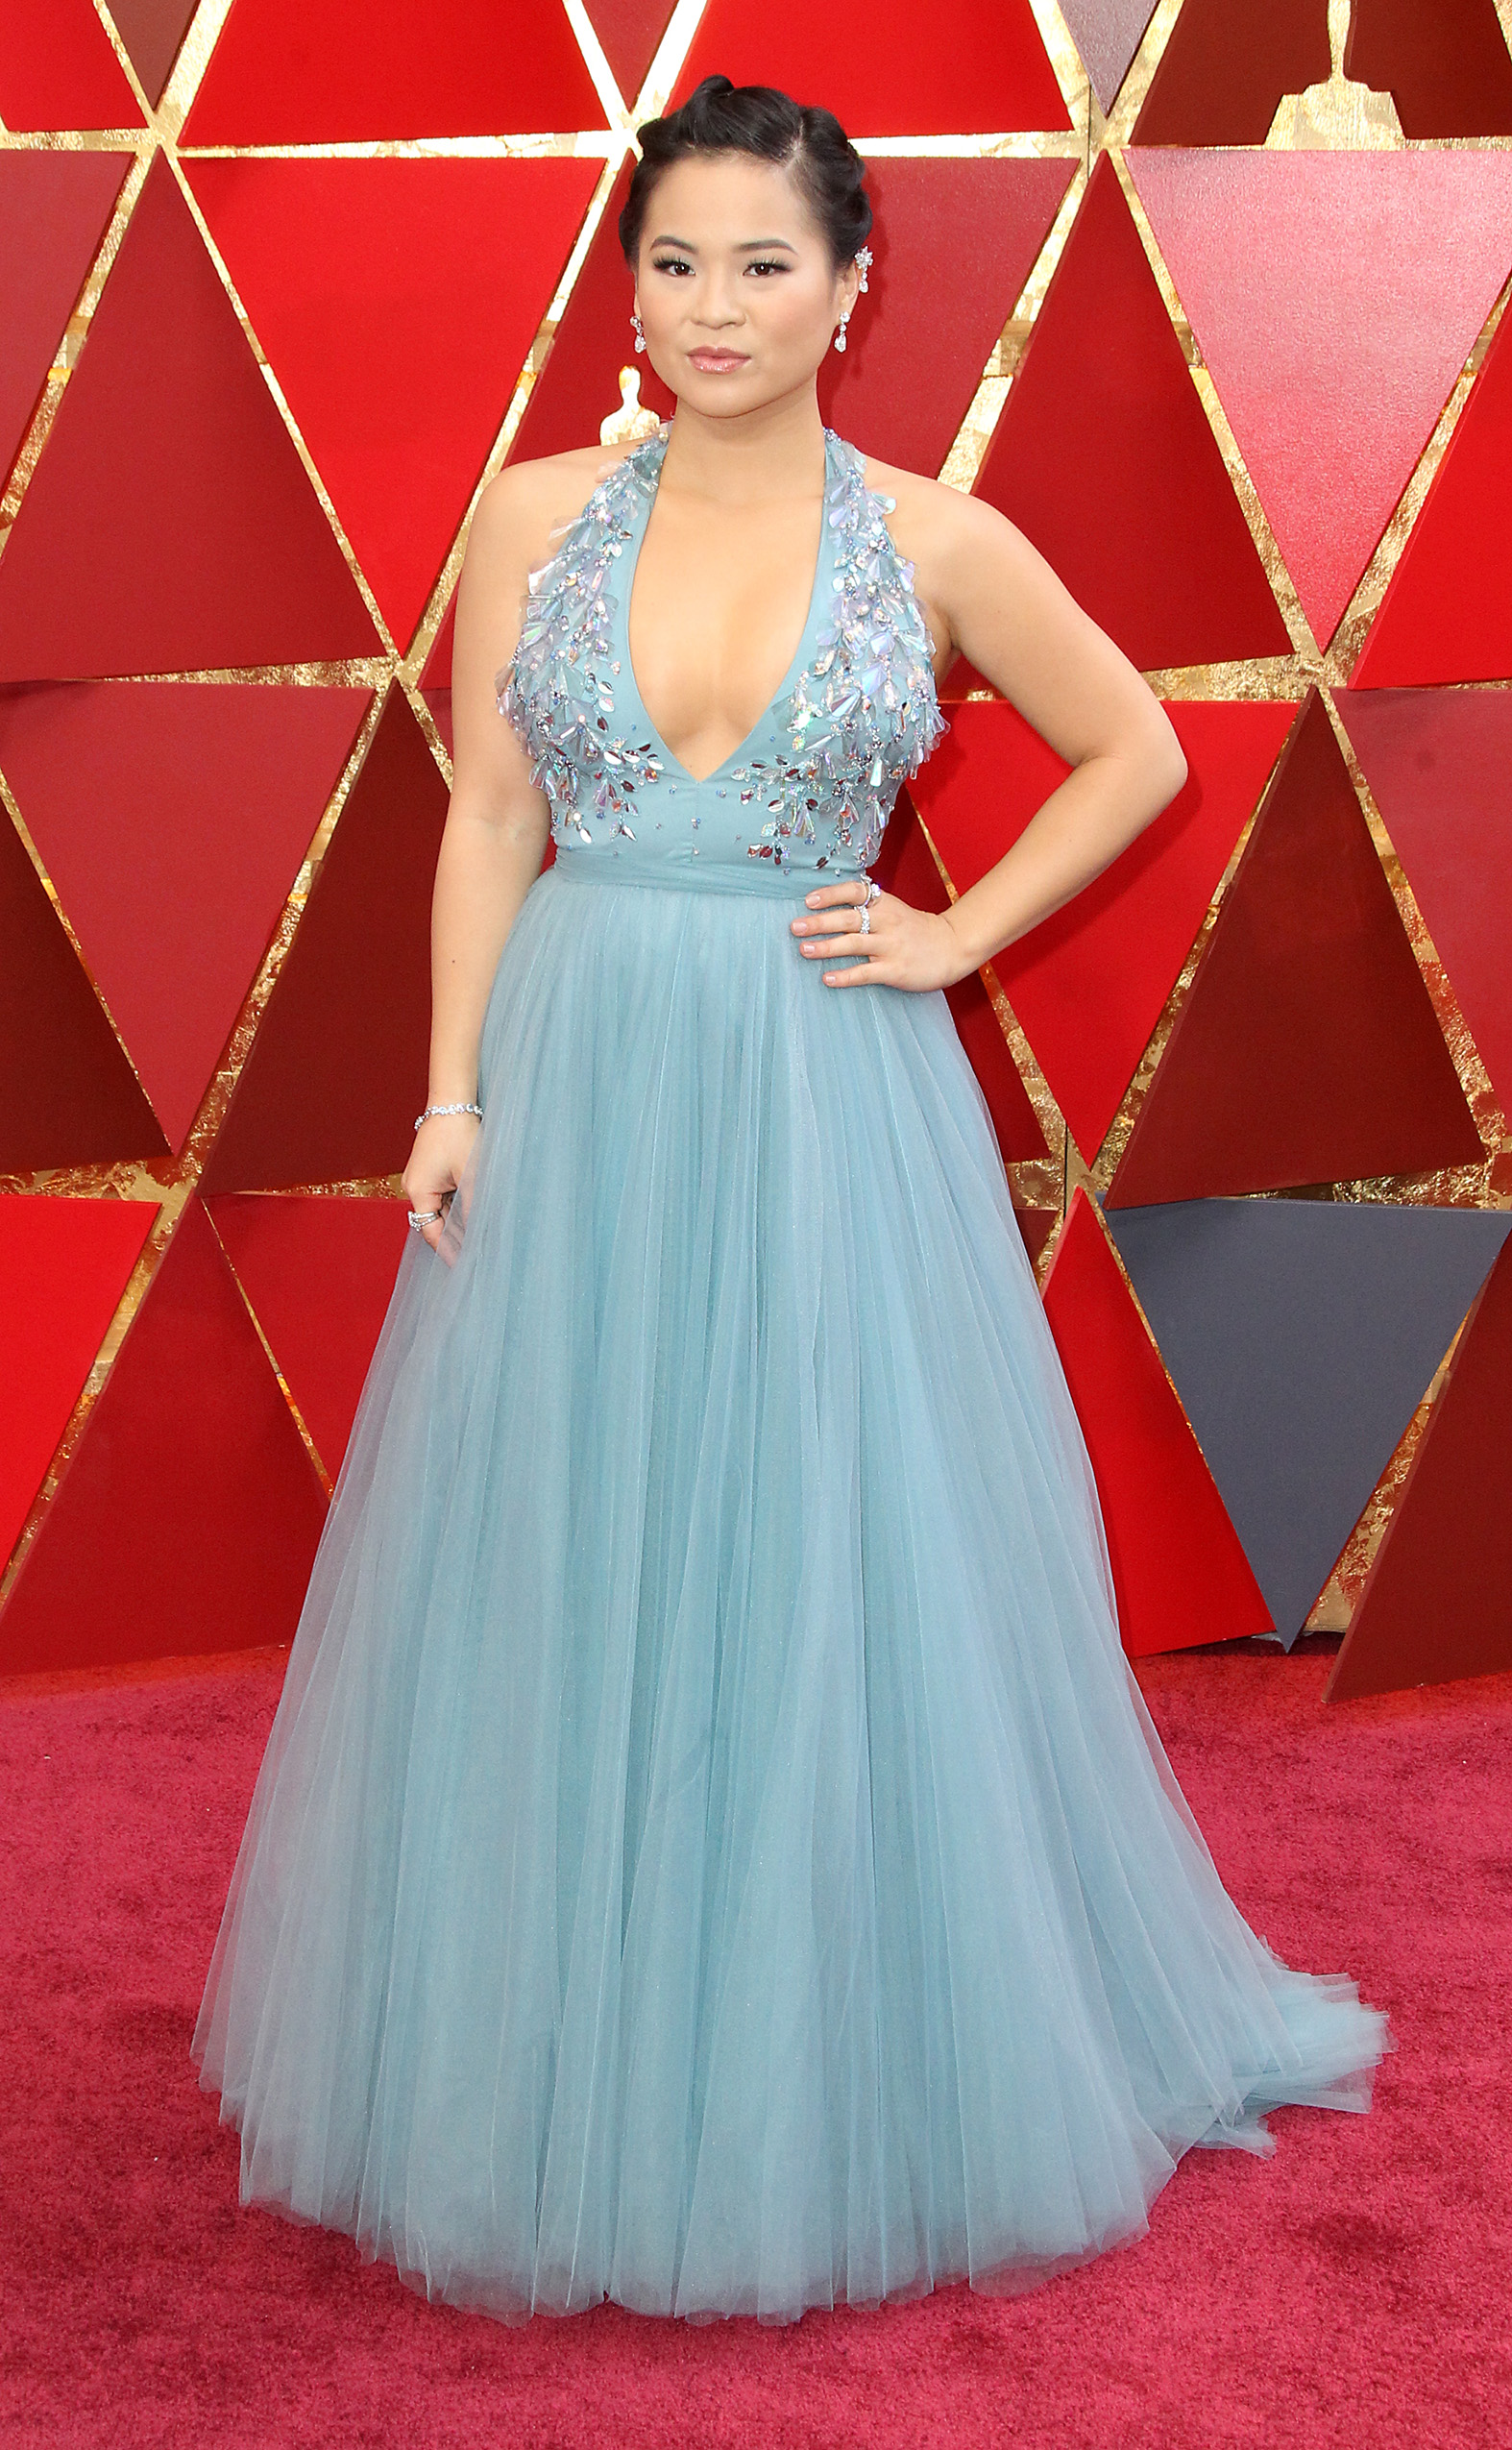 Kelly Marie arrives at the 90th Annual Academy Awards (Oscars) held at the Dolby Theater in Hollywood, California. (Image: Adriana M. Barraza/WENN.com)<p></p>